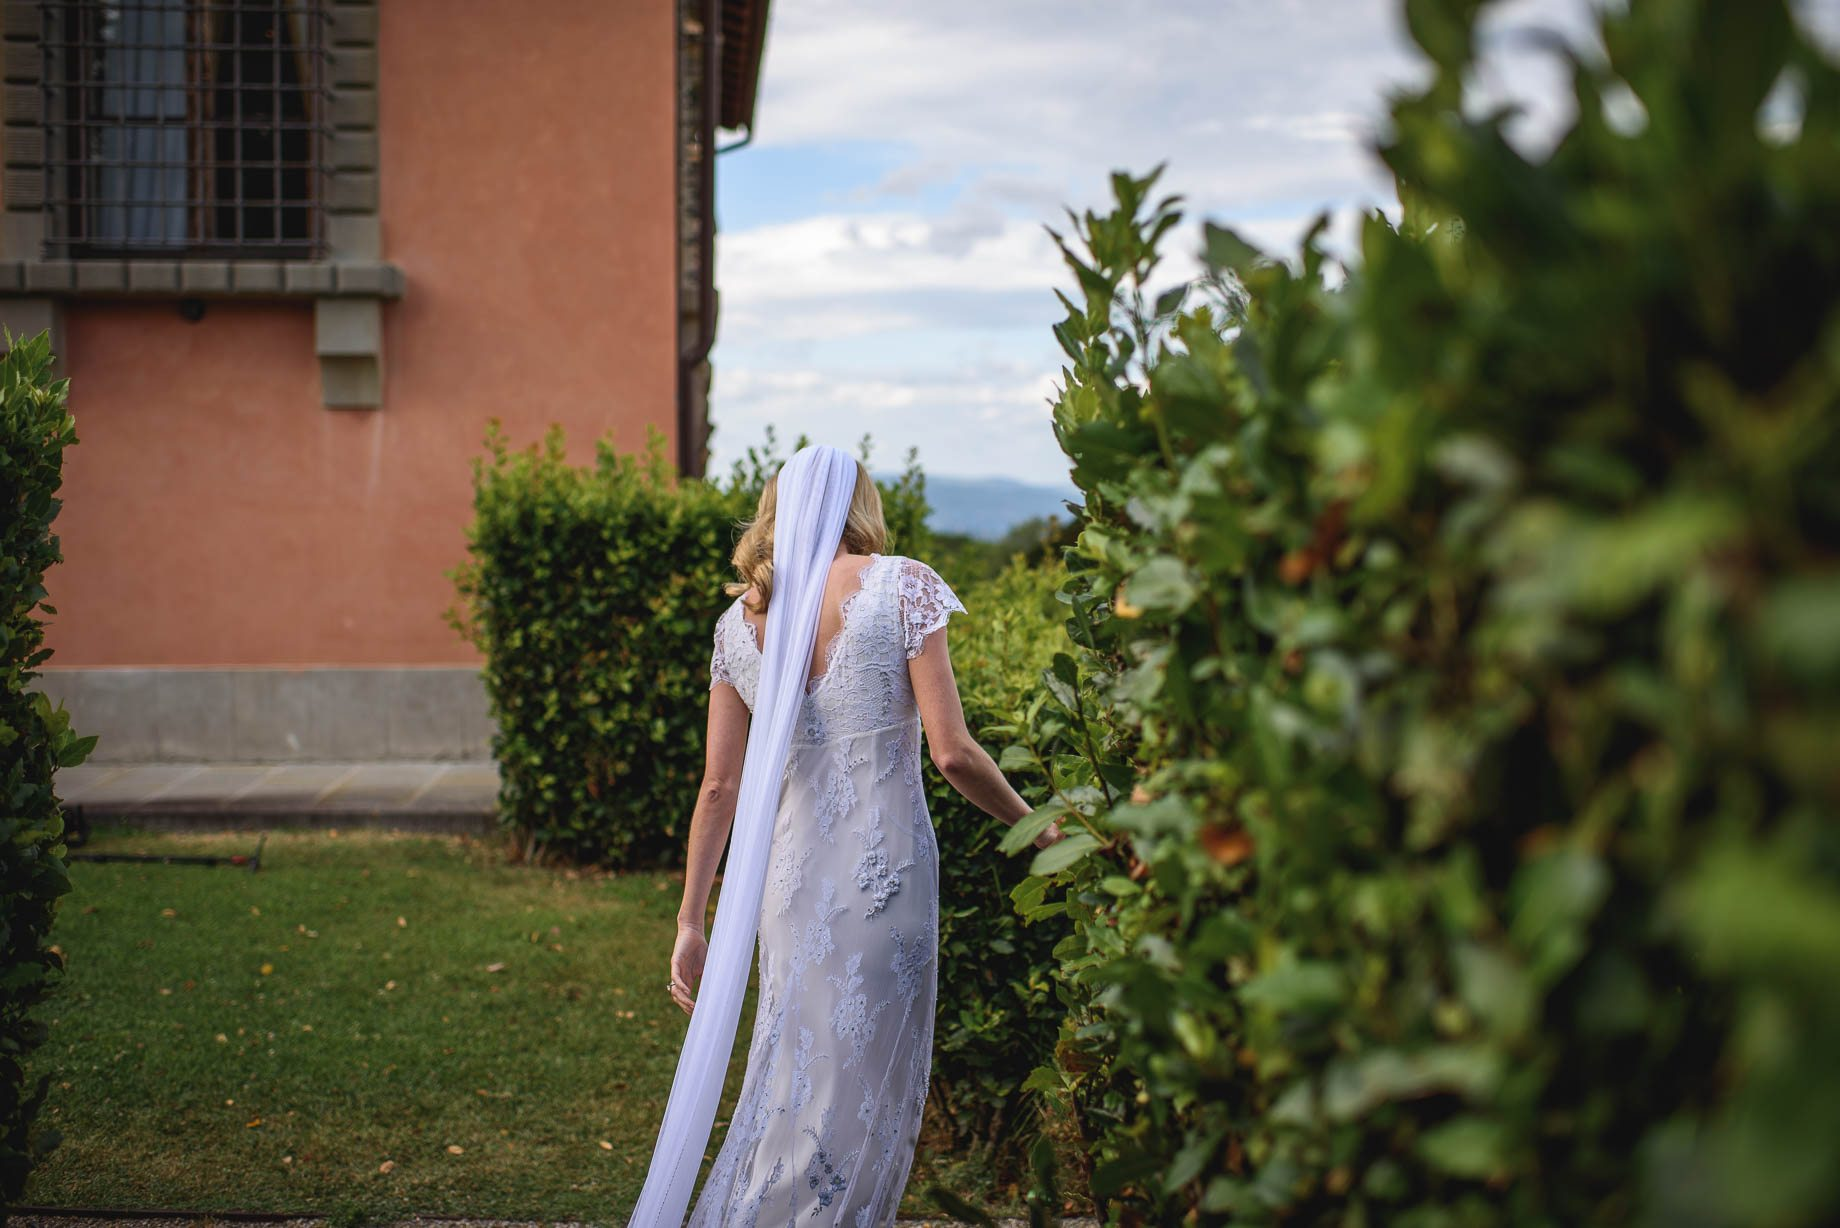 Tuscany wedding photography - Roisin and Moubin - Guy Collier Photography (135 of 251)